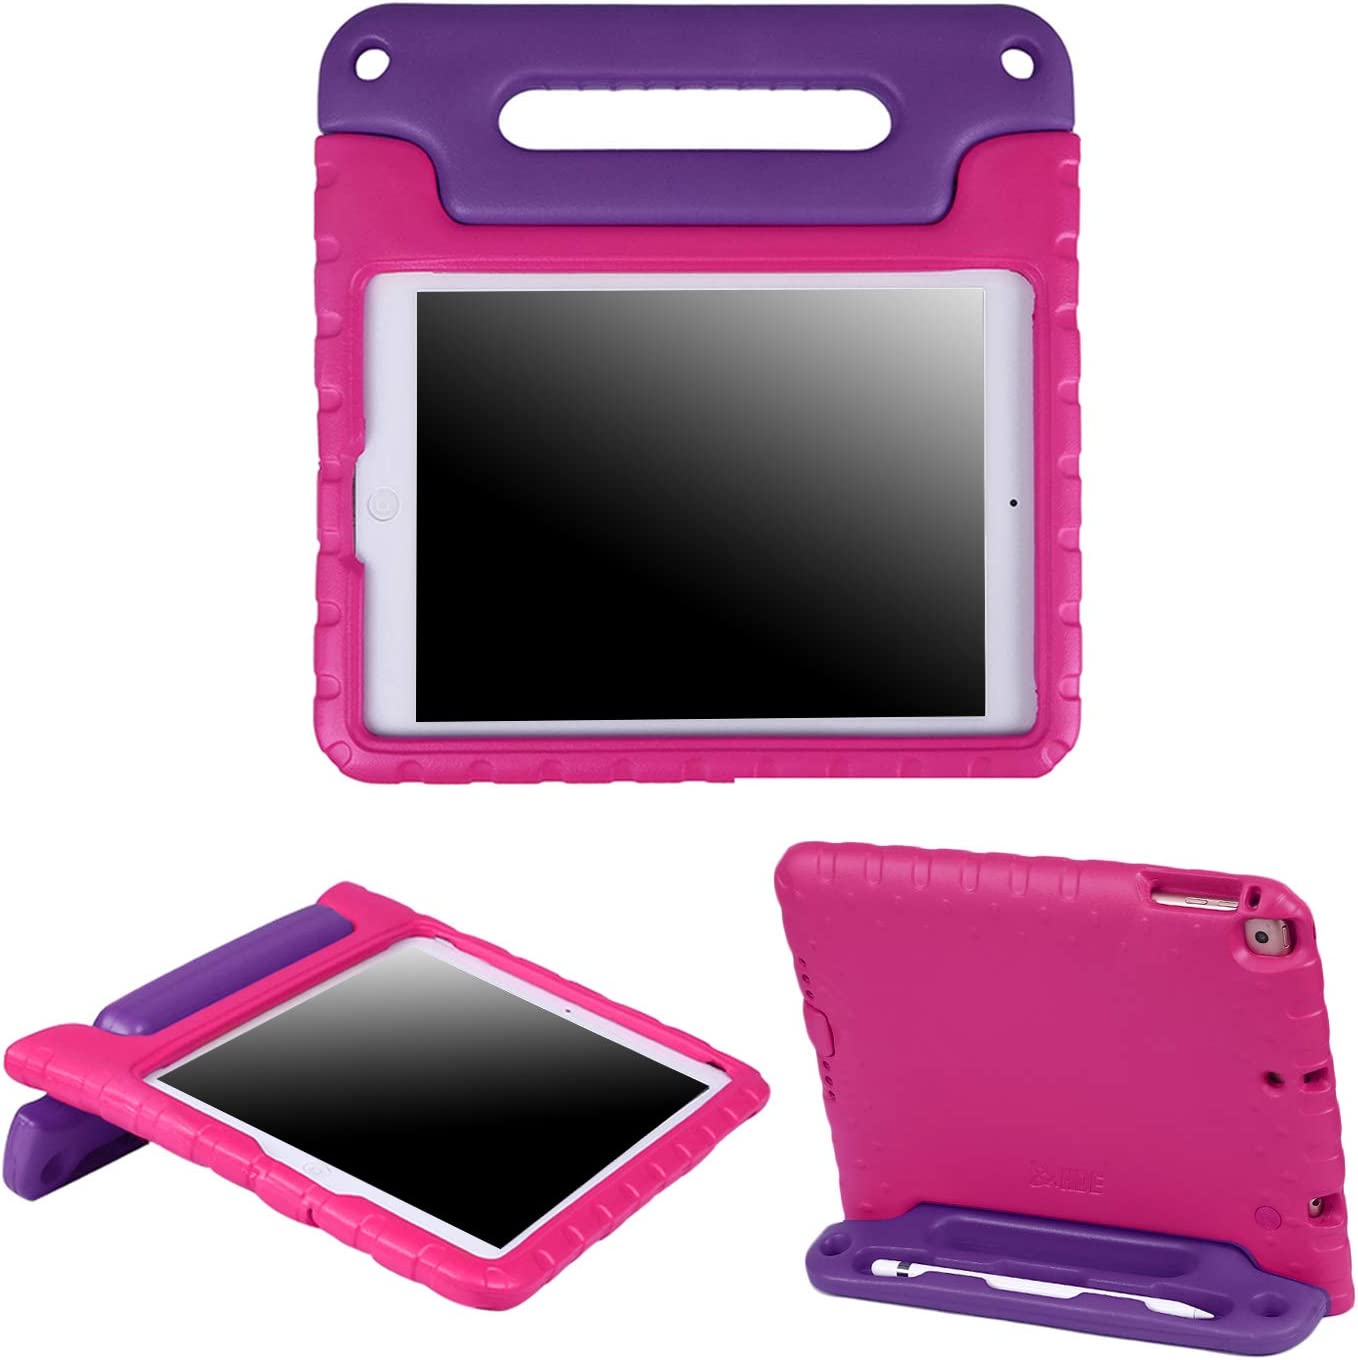 HDE iPad 6th Generation Case for Kids iPad 9.7 inch 5th and 6th Generation Cases for Kids Shock Proof Protective Light Weight Cover with Handle Stand for Apple iPad 9.7 with Pencil Holder Pink Purple